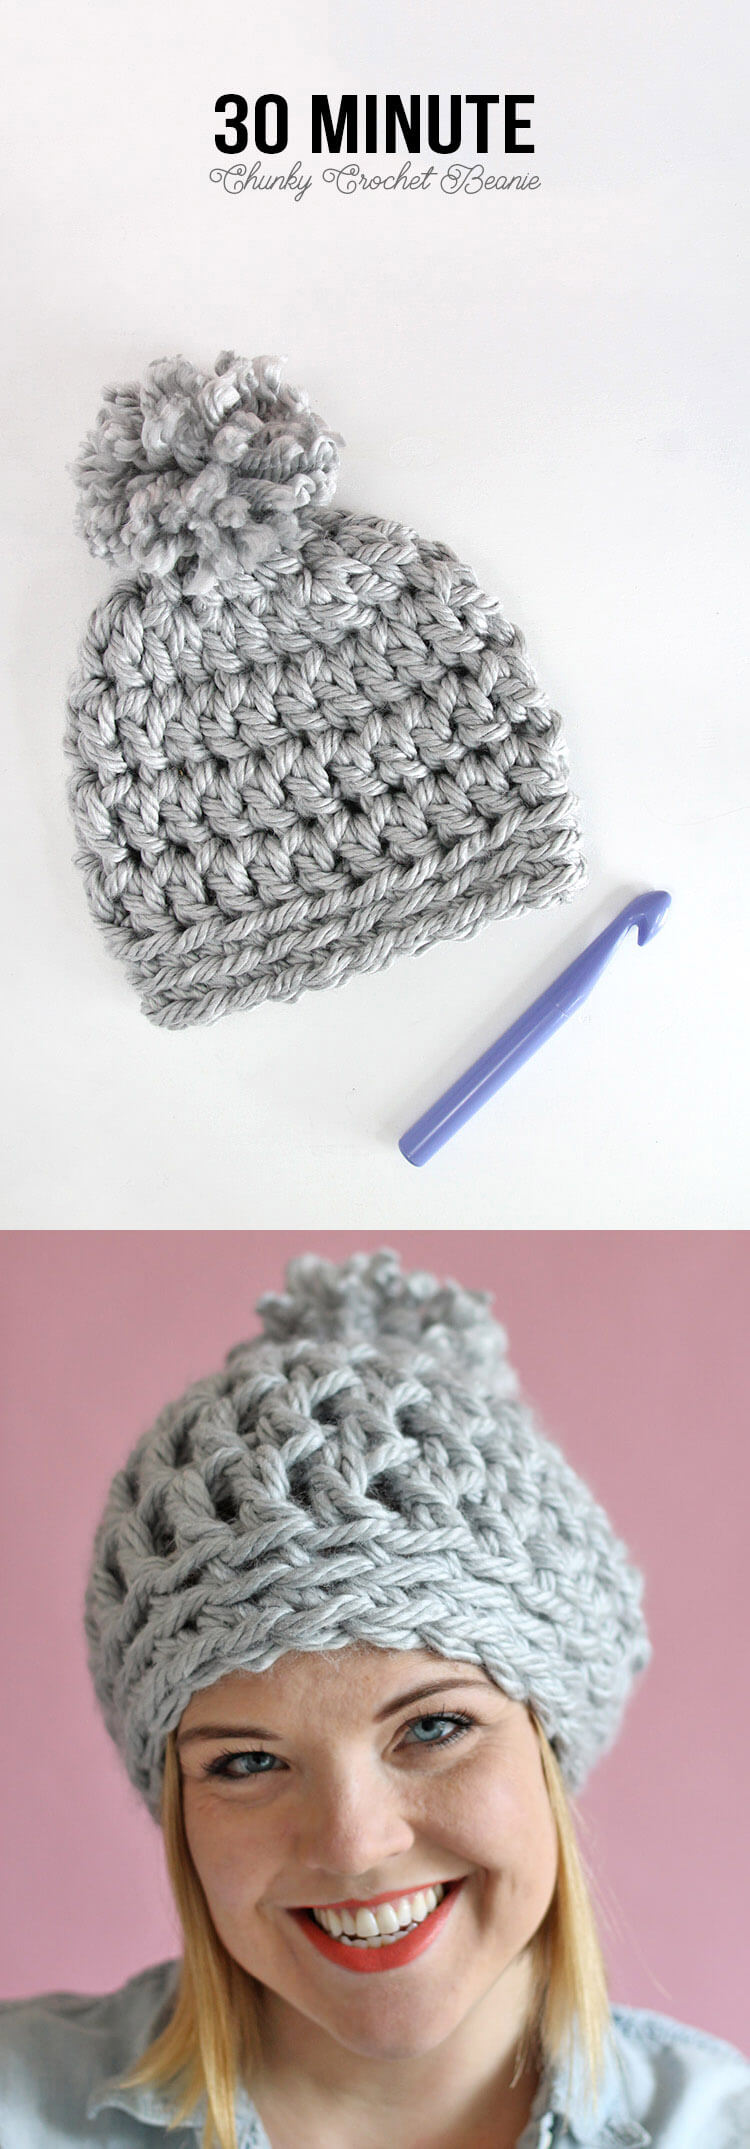 Easy Chunky Crochet Beanie - a 30 minute hat! Free pattern from Persia Lou